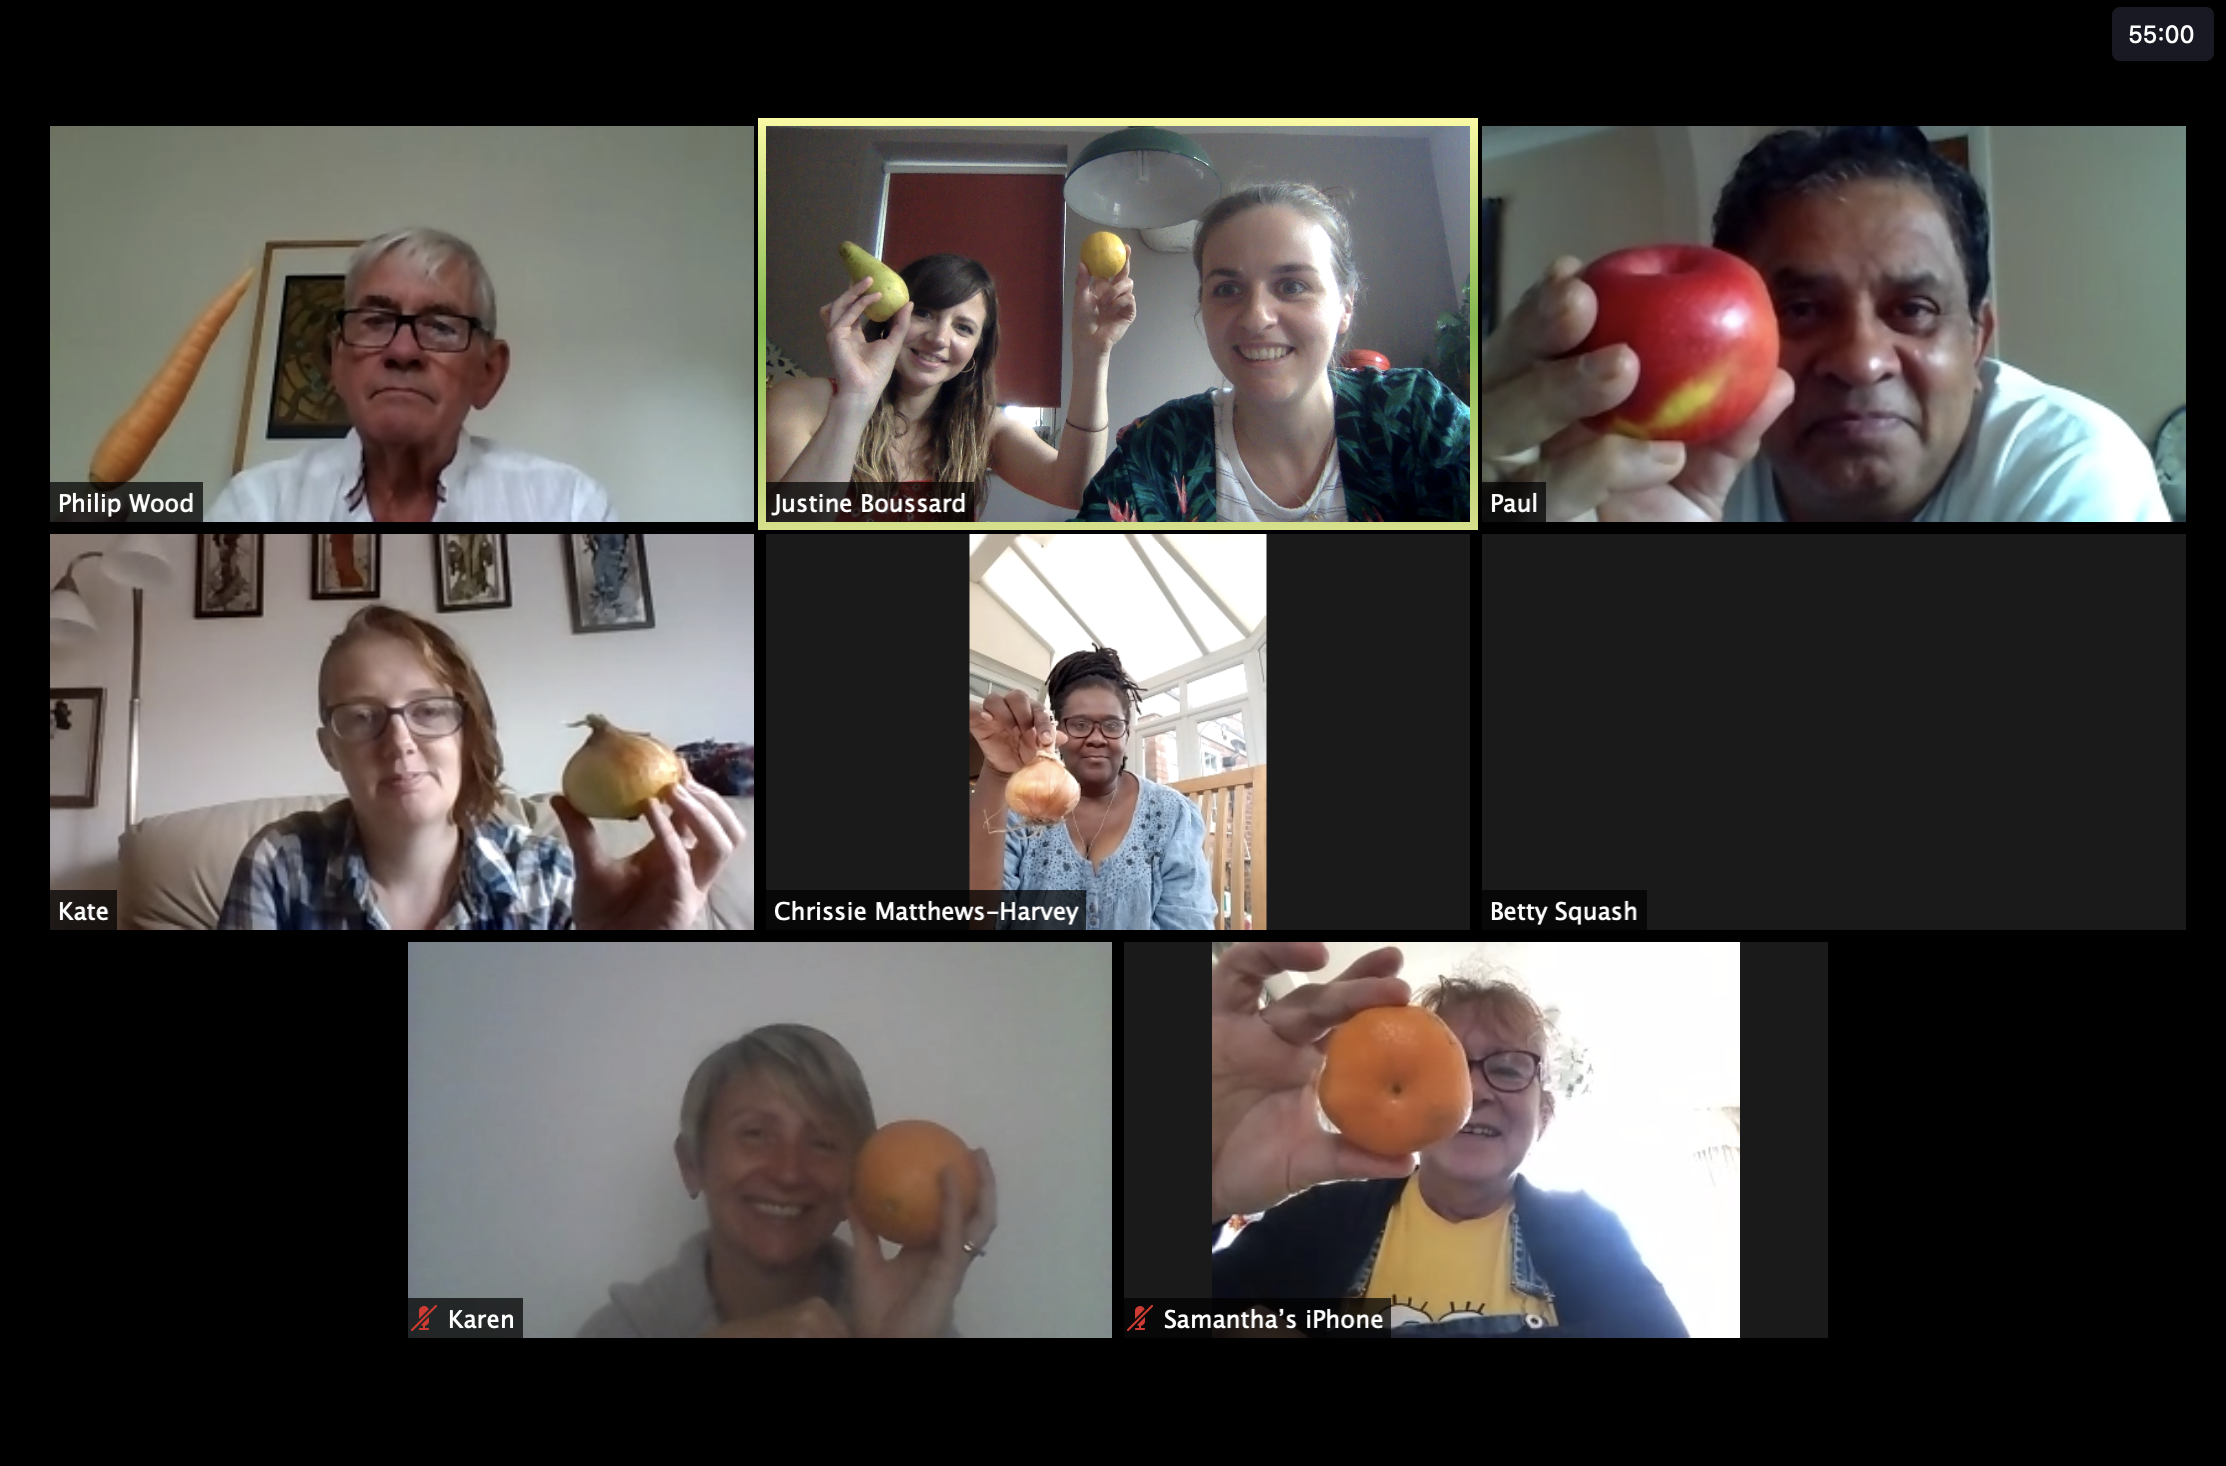 People on a video call holding fruit and vegetables